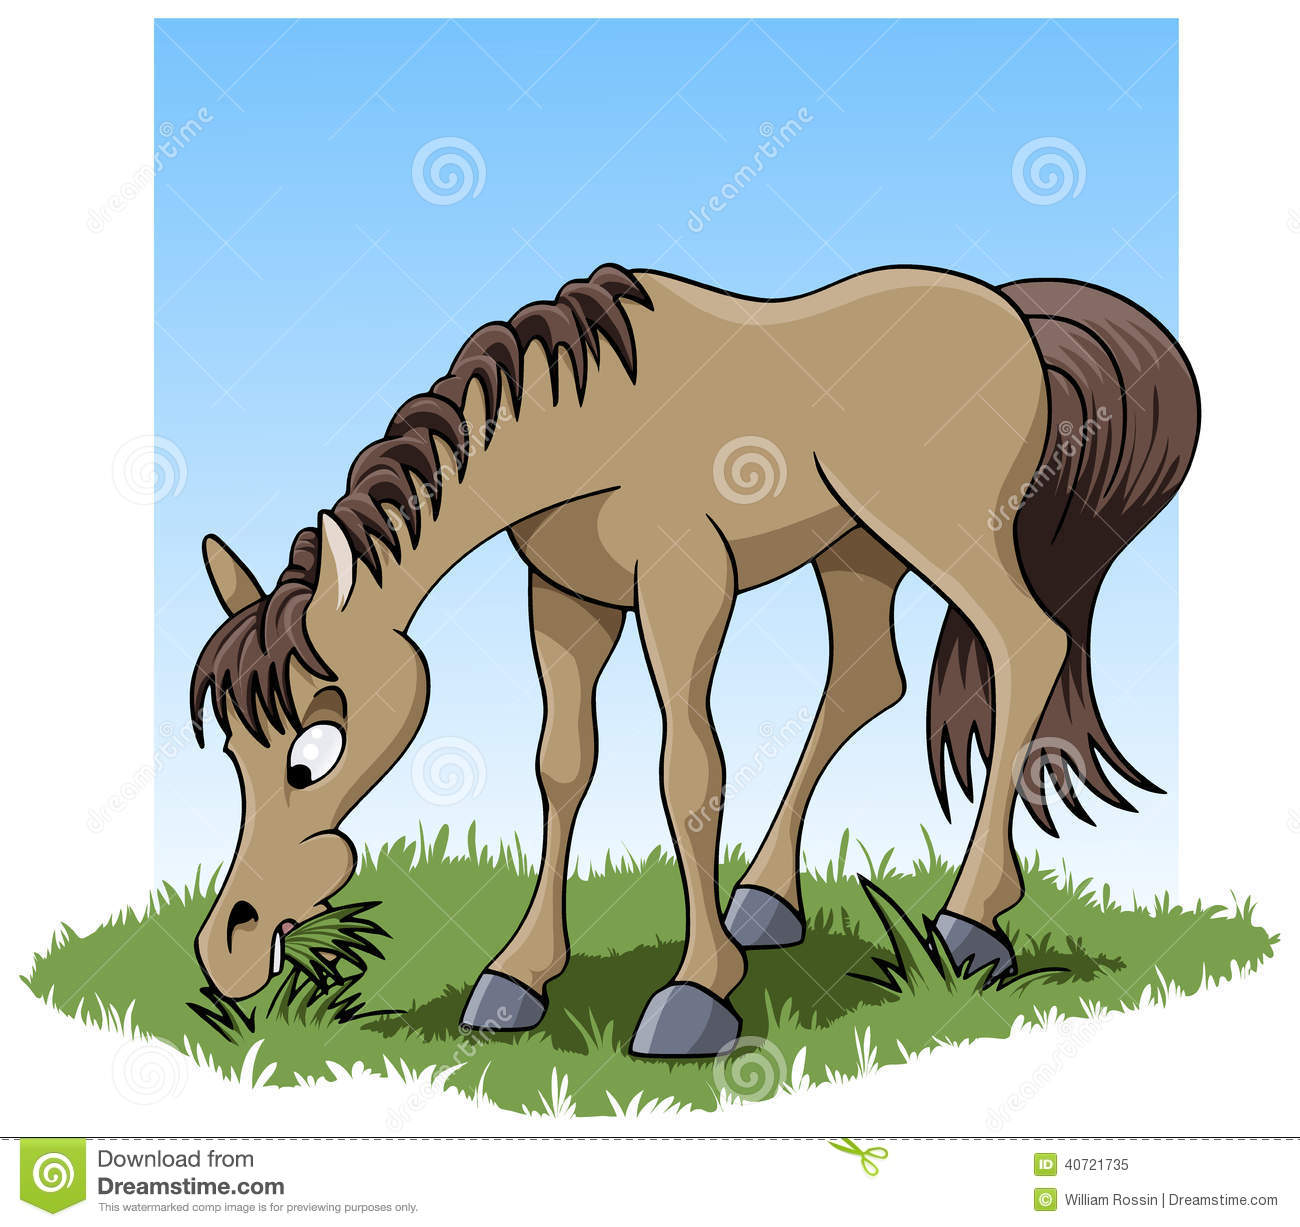 Animals eating grass clipart.